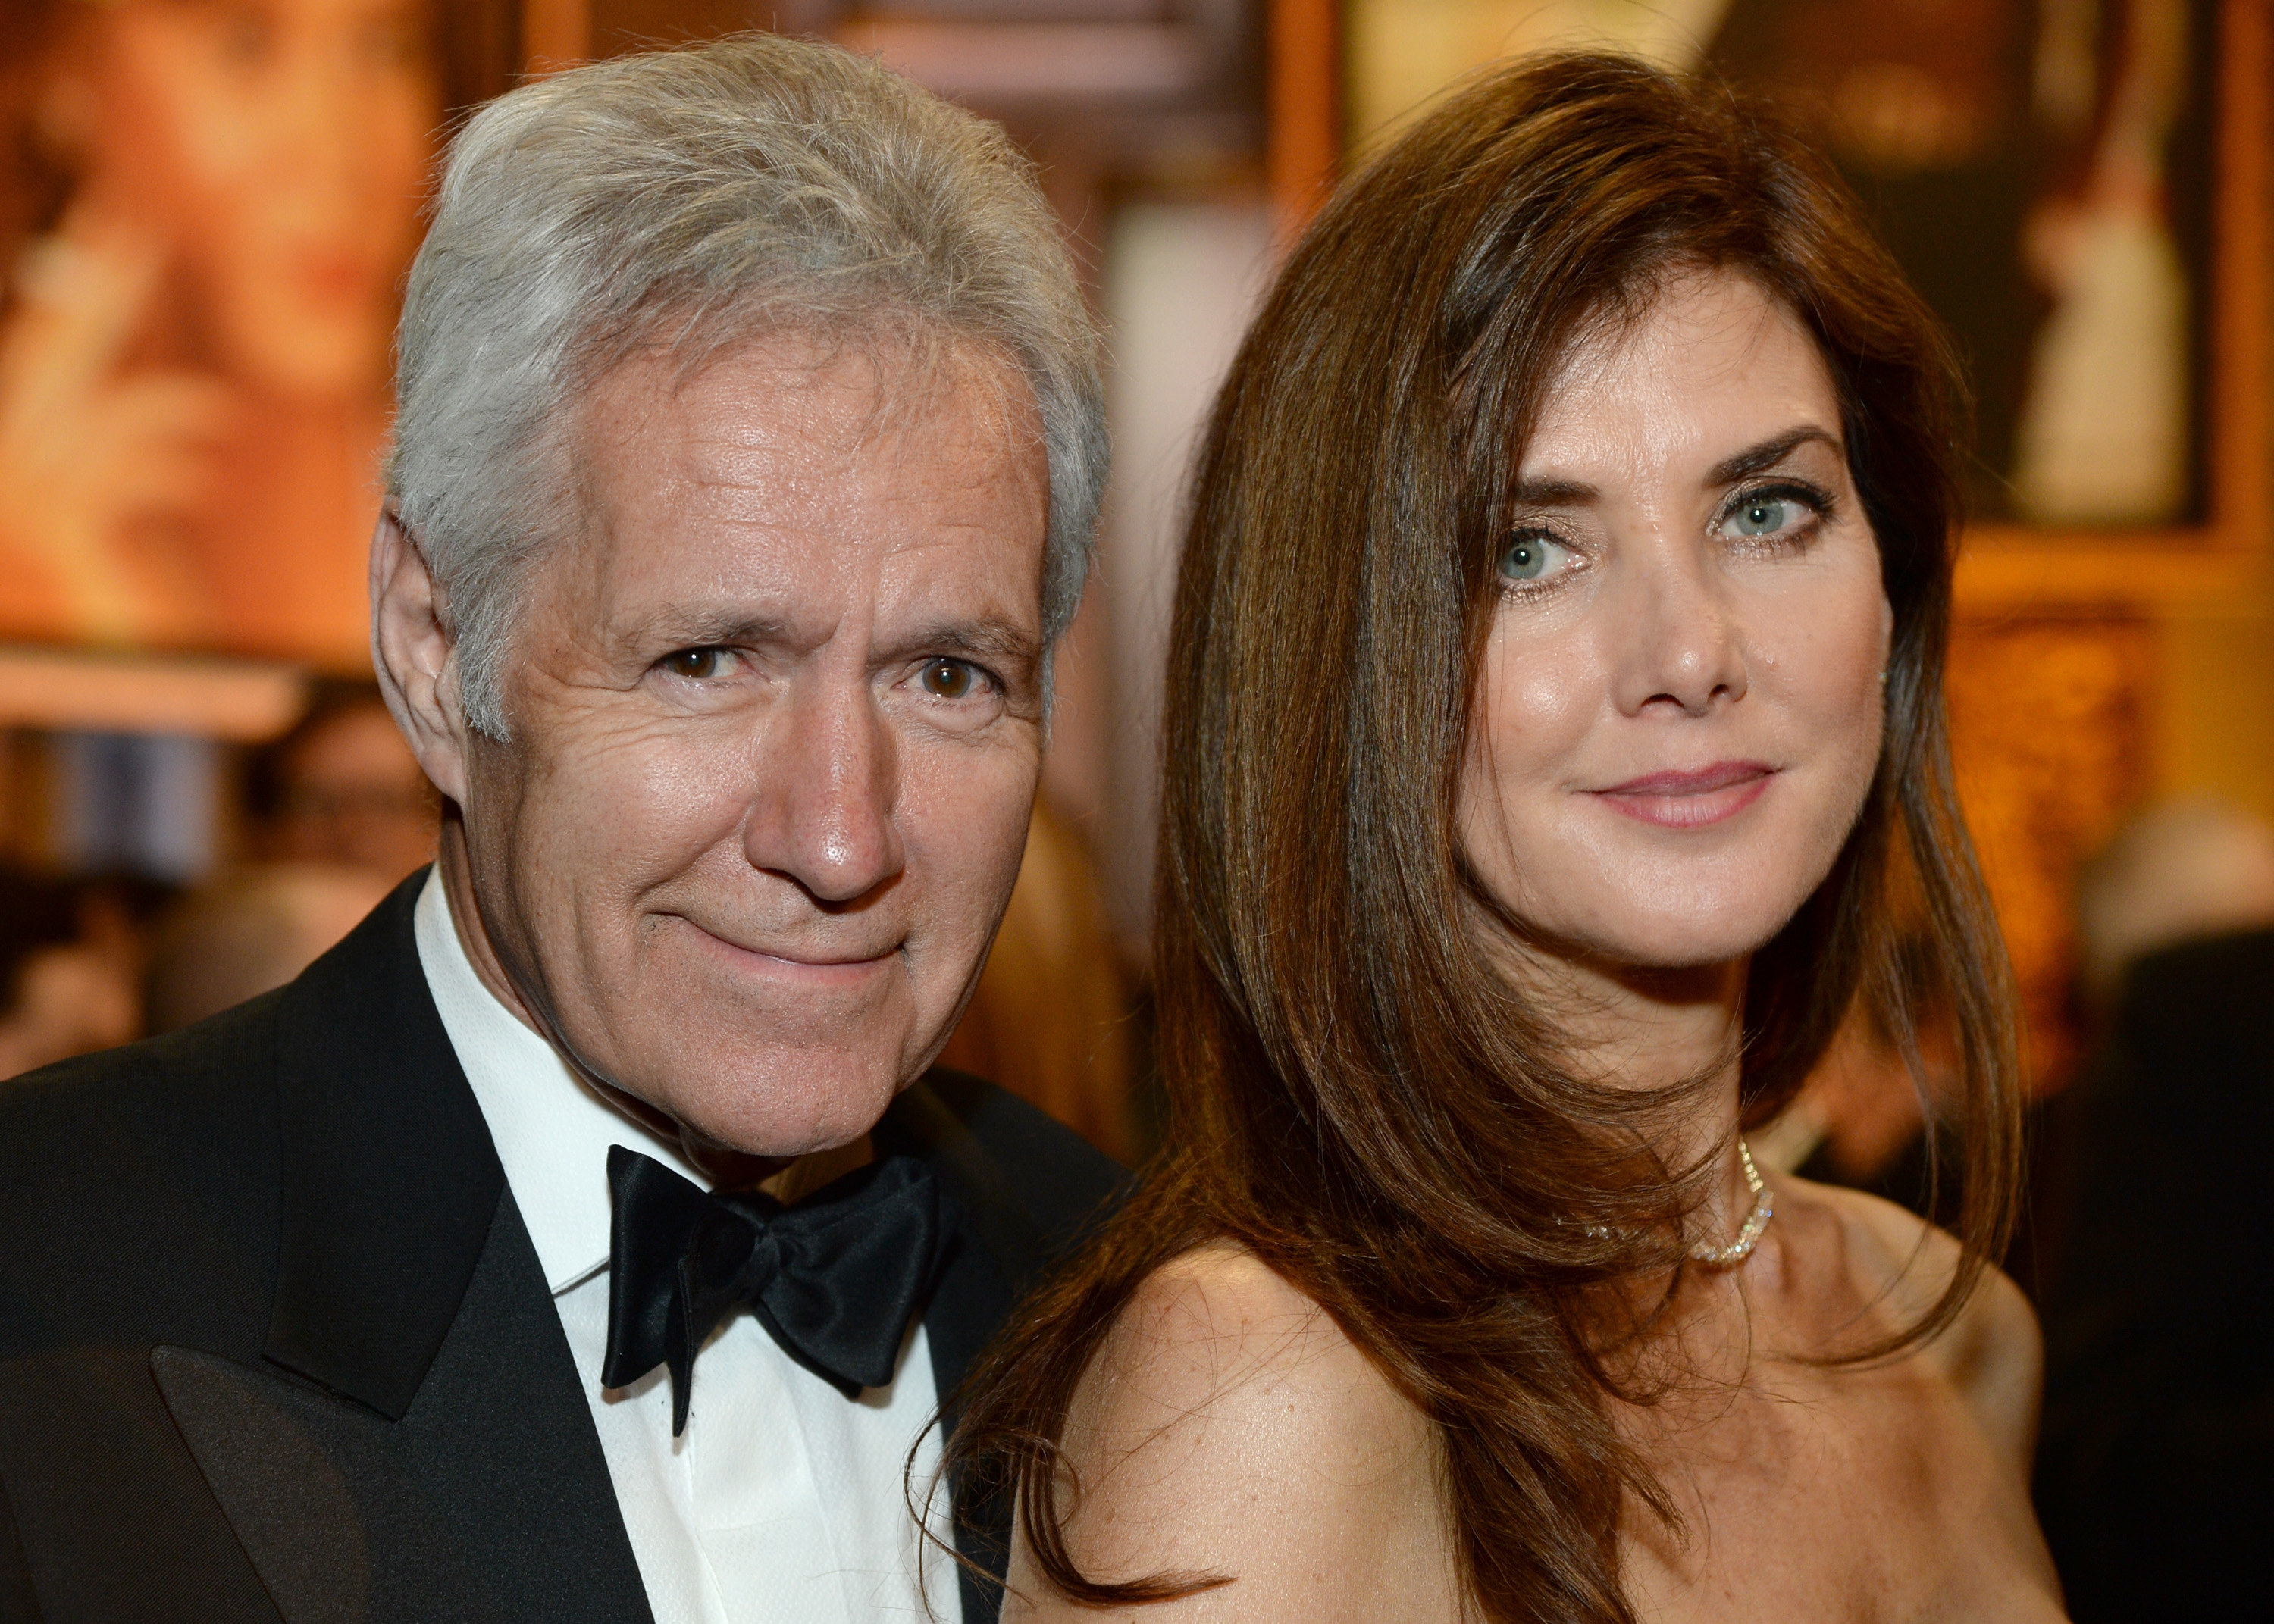 TV personality Alex Trebek (L) and Jean Trebek attend the 2014 AFI Life Achievement Award: A Tribute to Jane Fonda at the Dolby Theatre on June 5, 2014 in Hollywood, California.